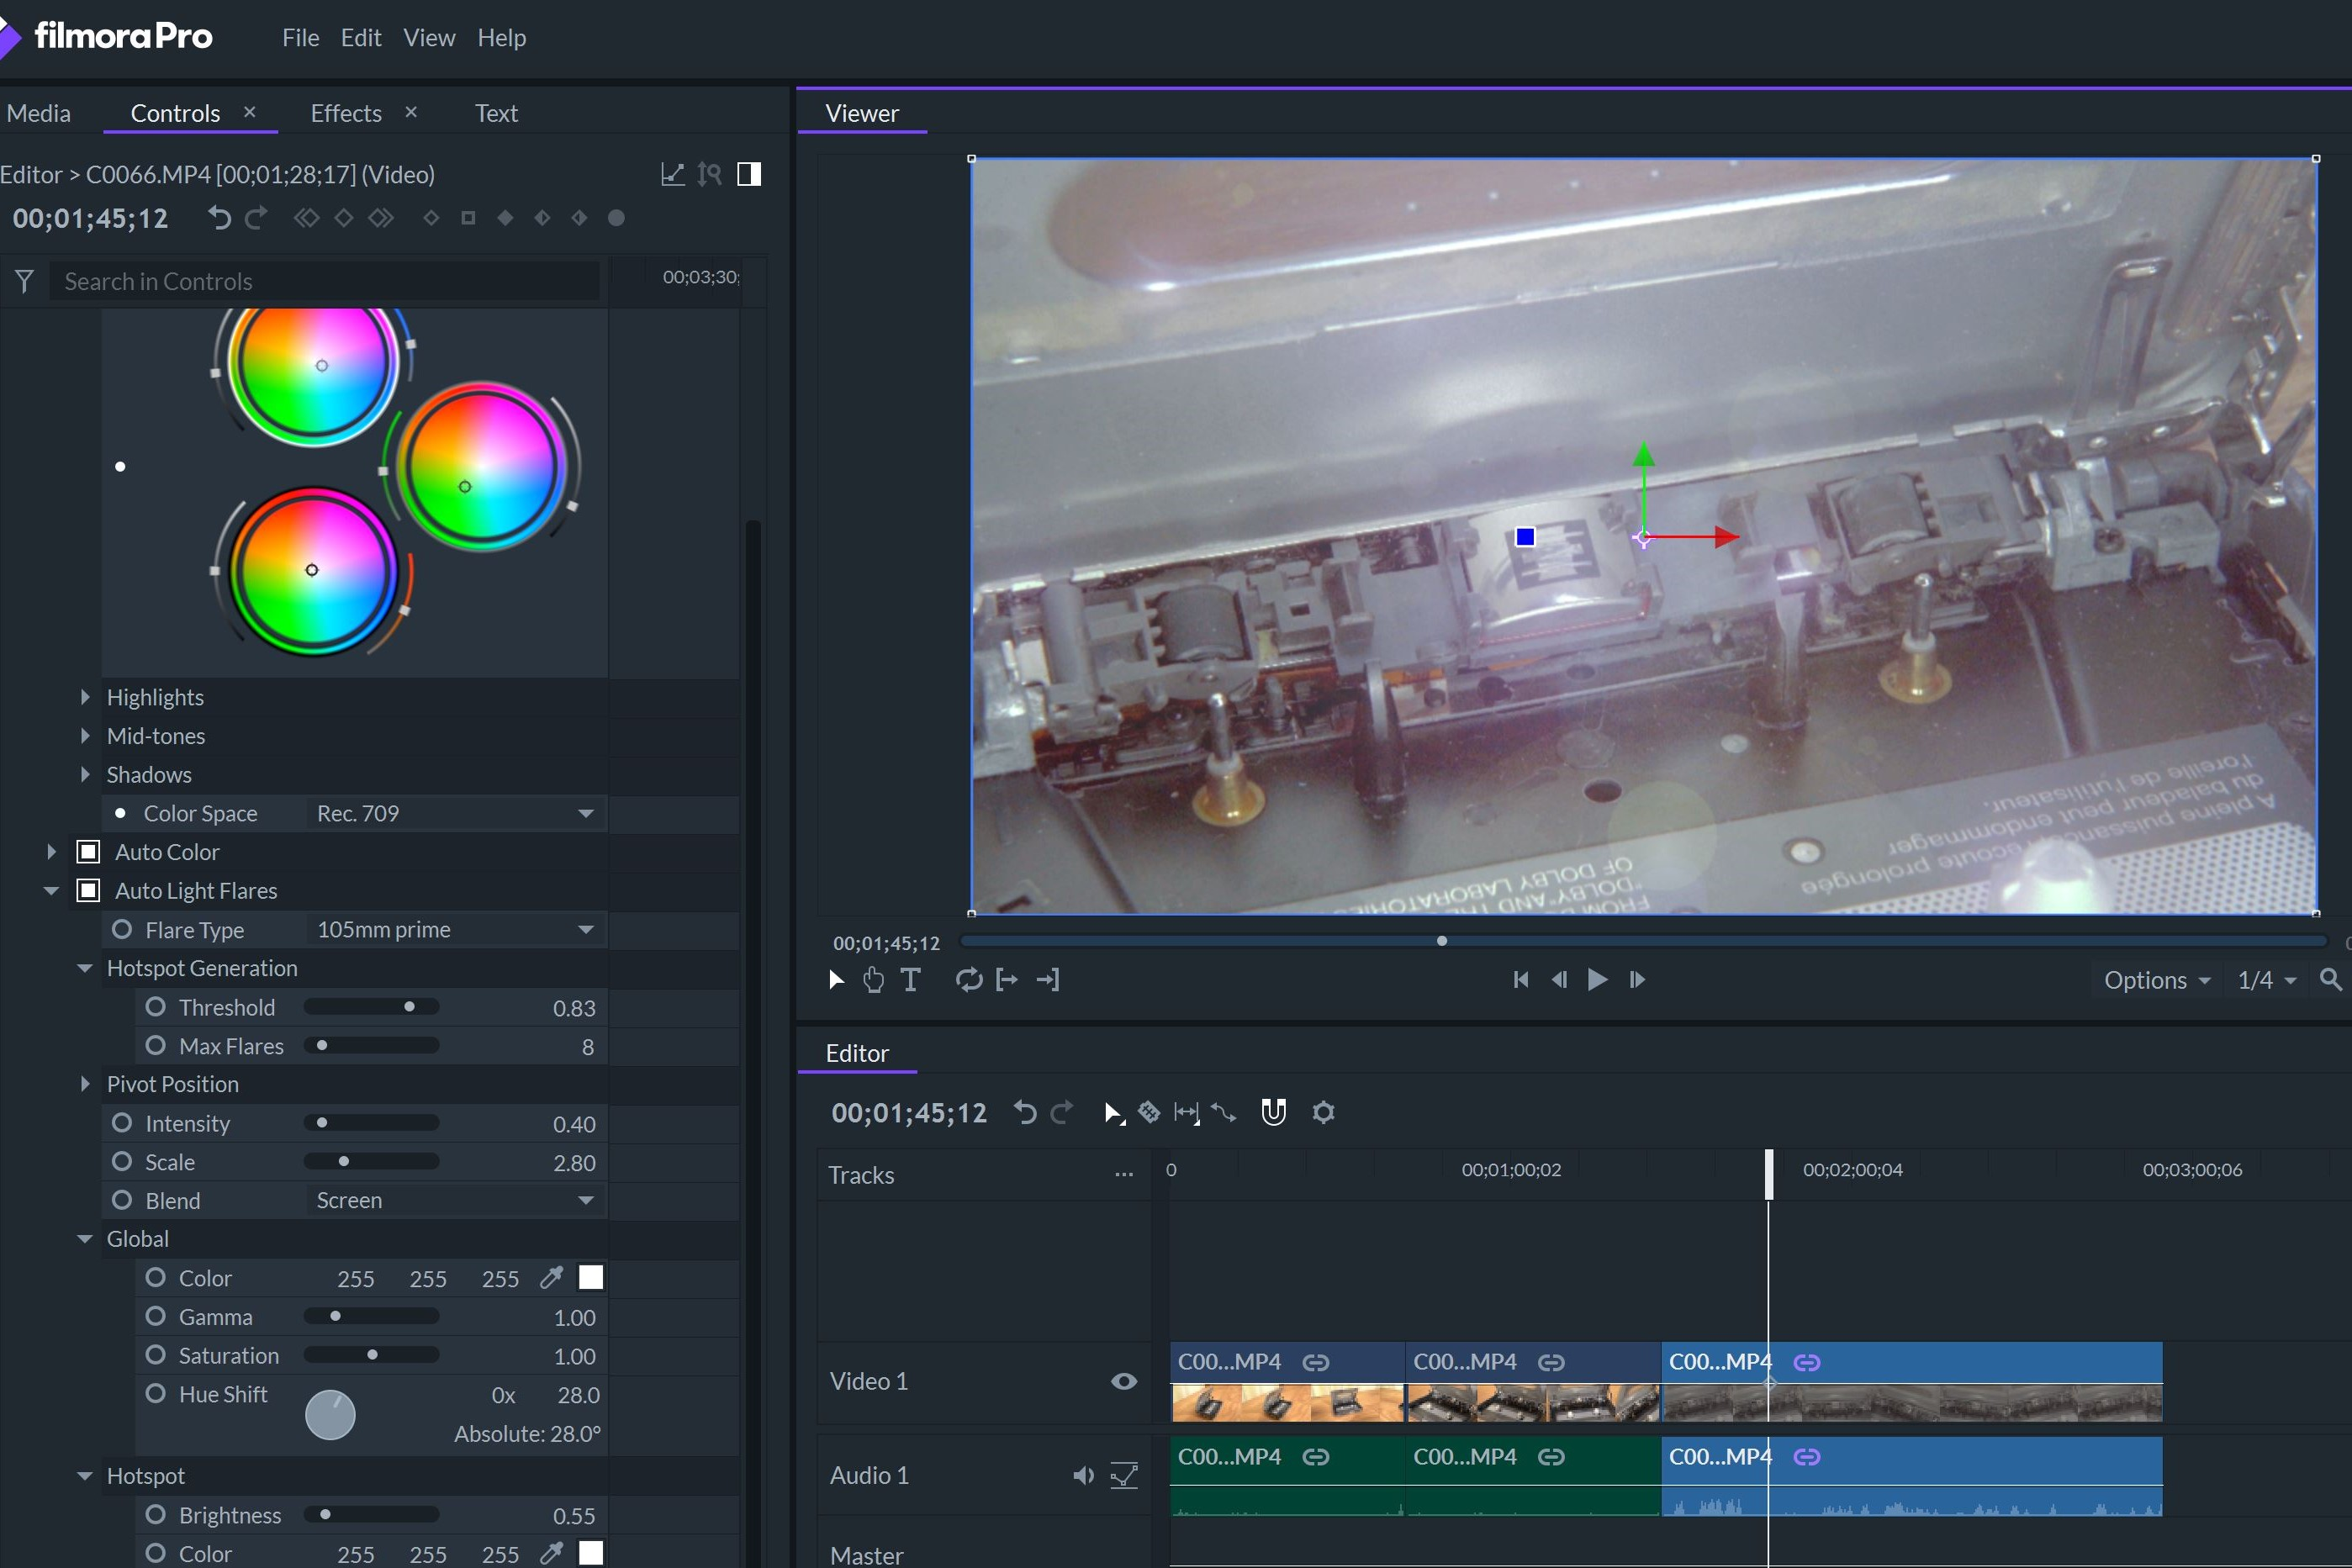 Review: Wondershare FilmoraPro video editing software